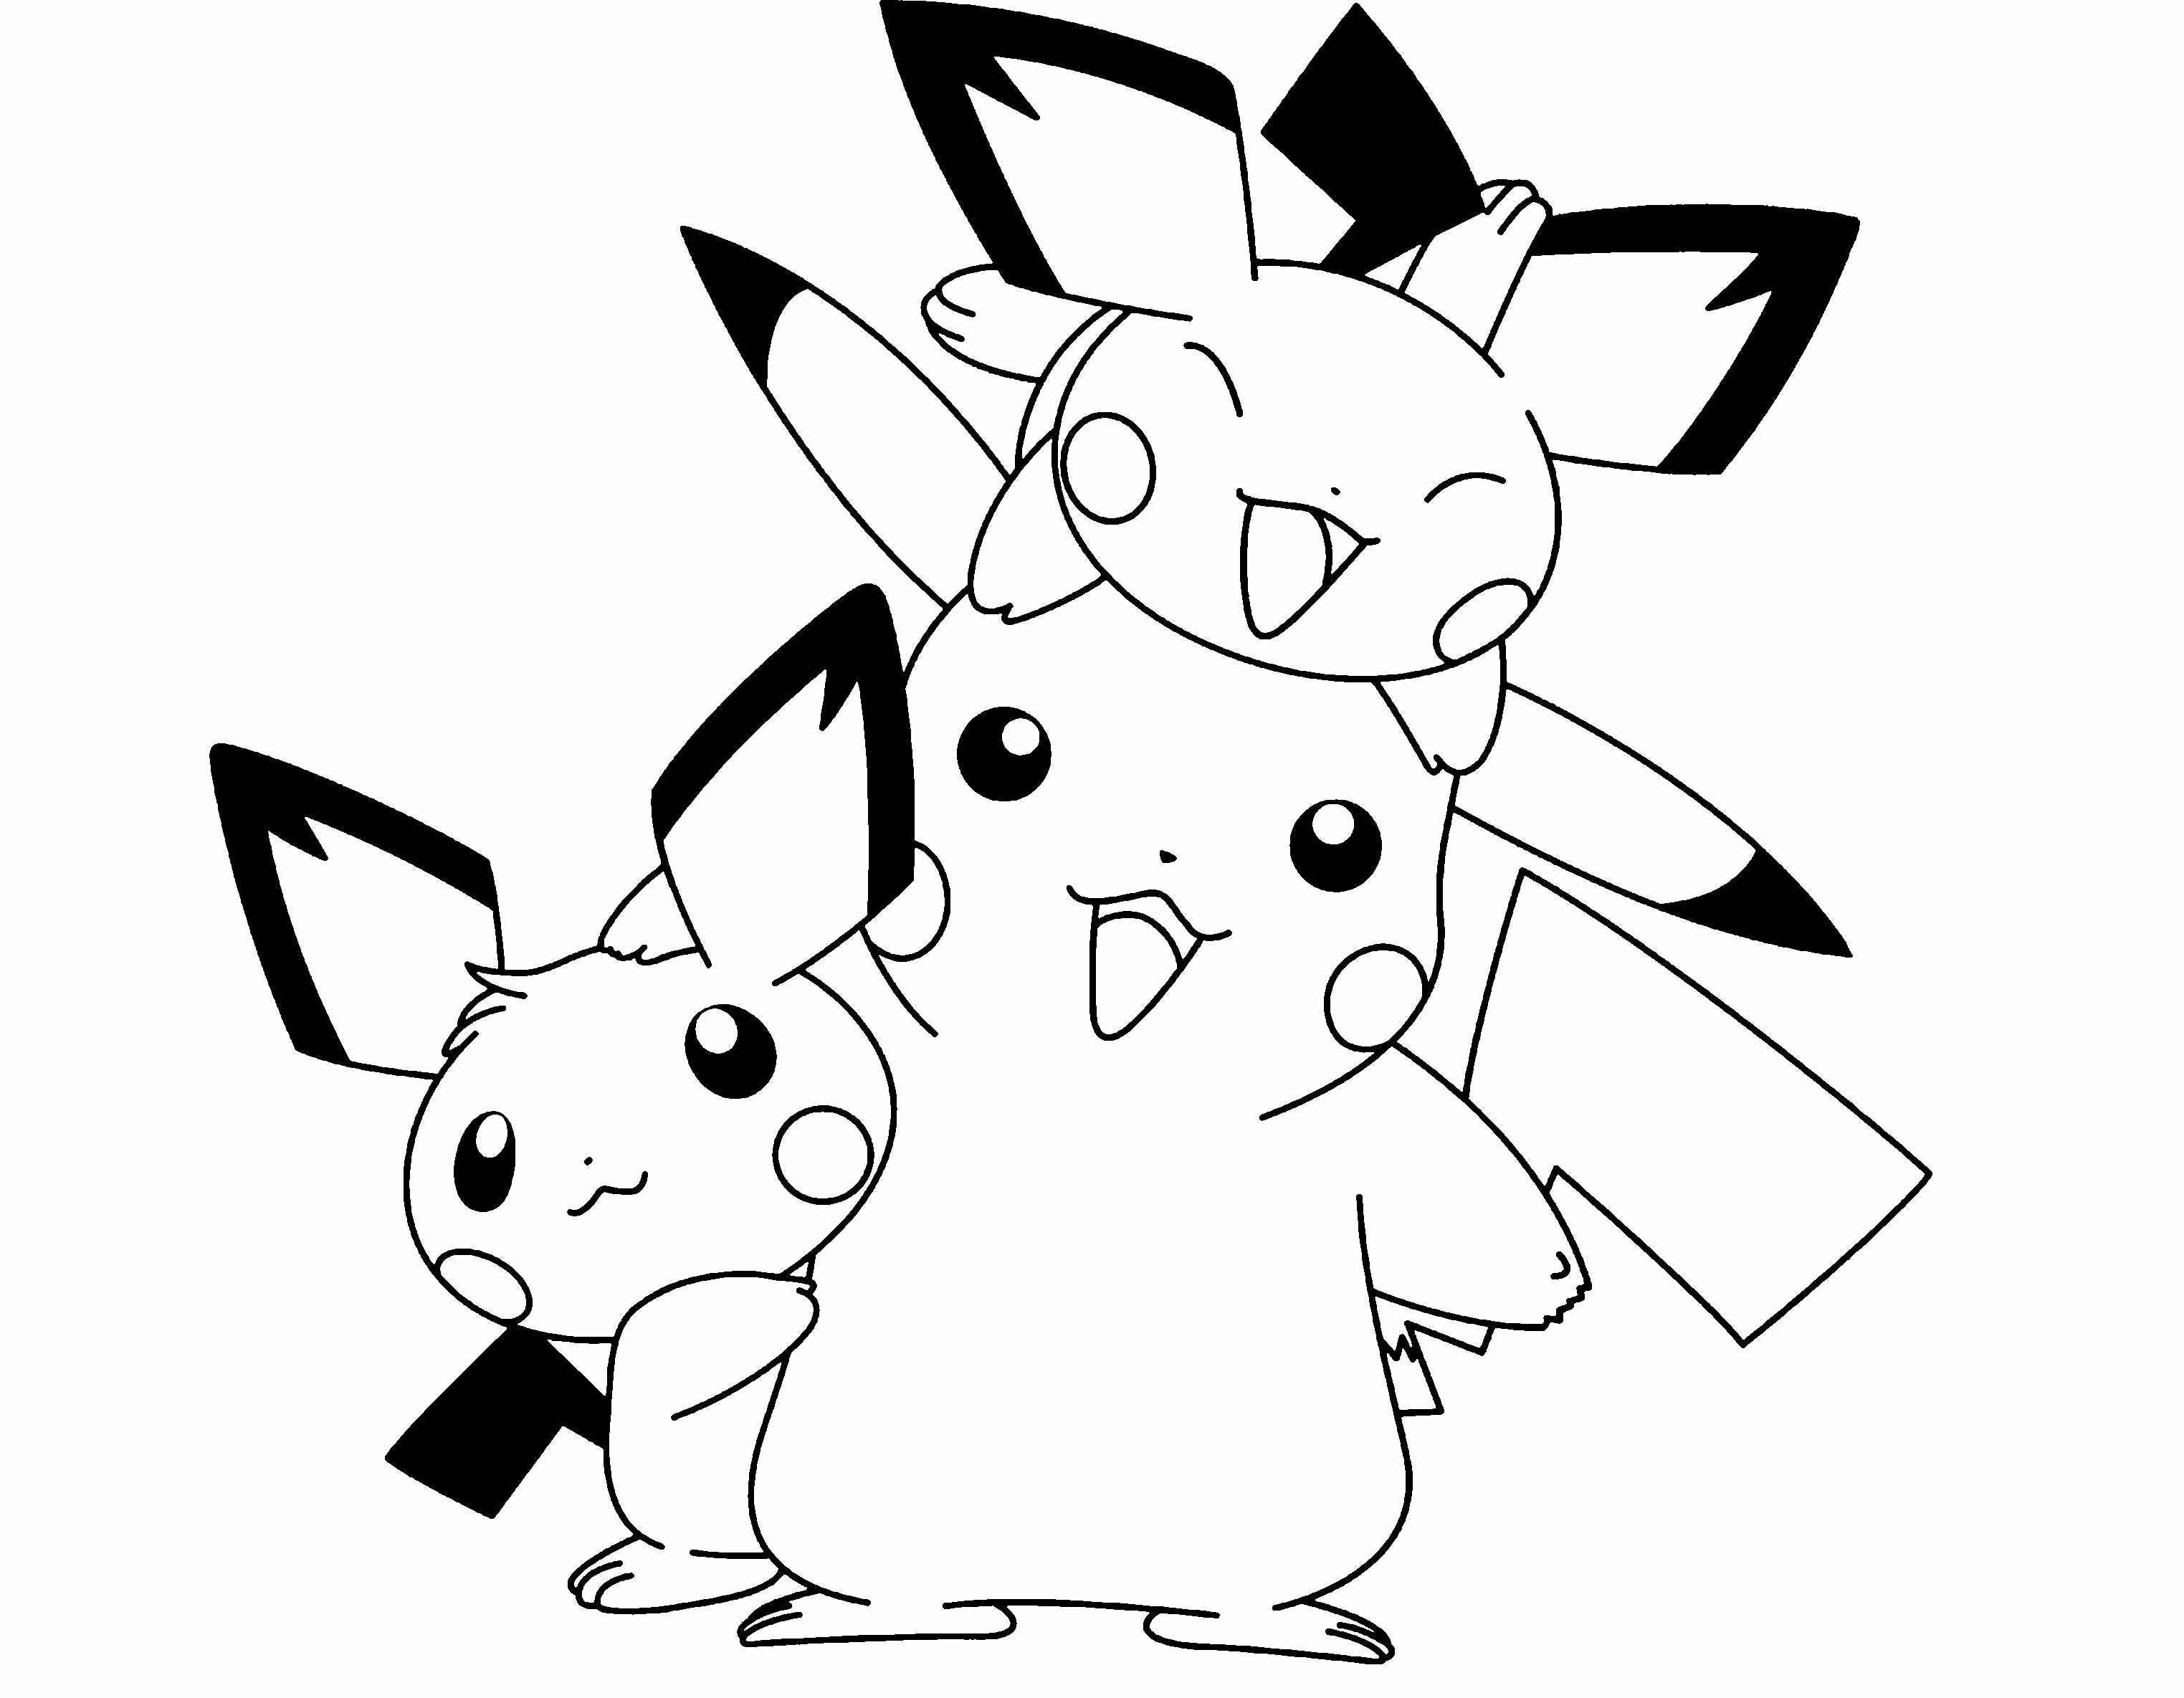 Pikachu clipart coloring page printable Coloring Cute Page Pokemon Pinterest